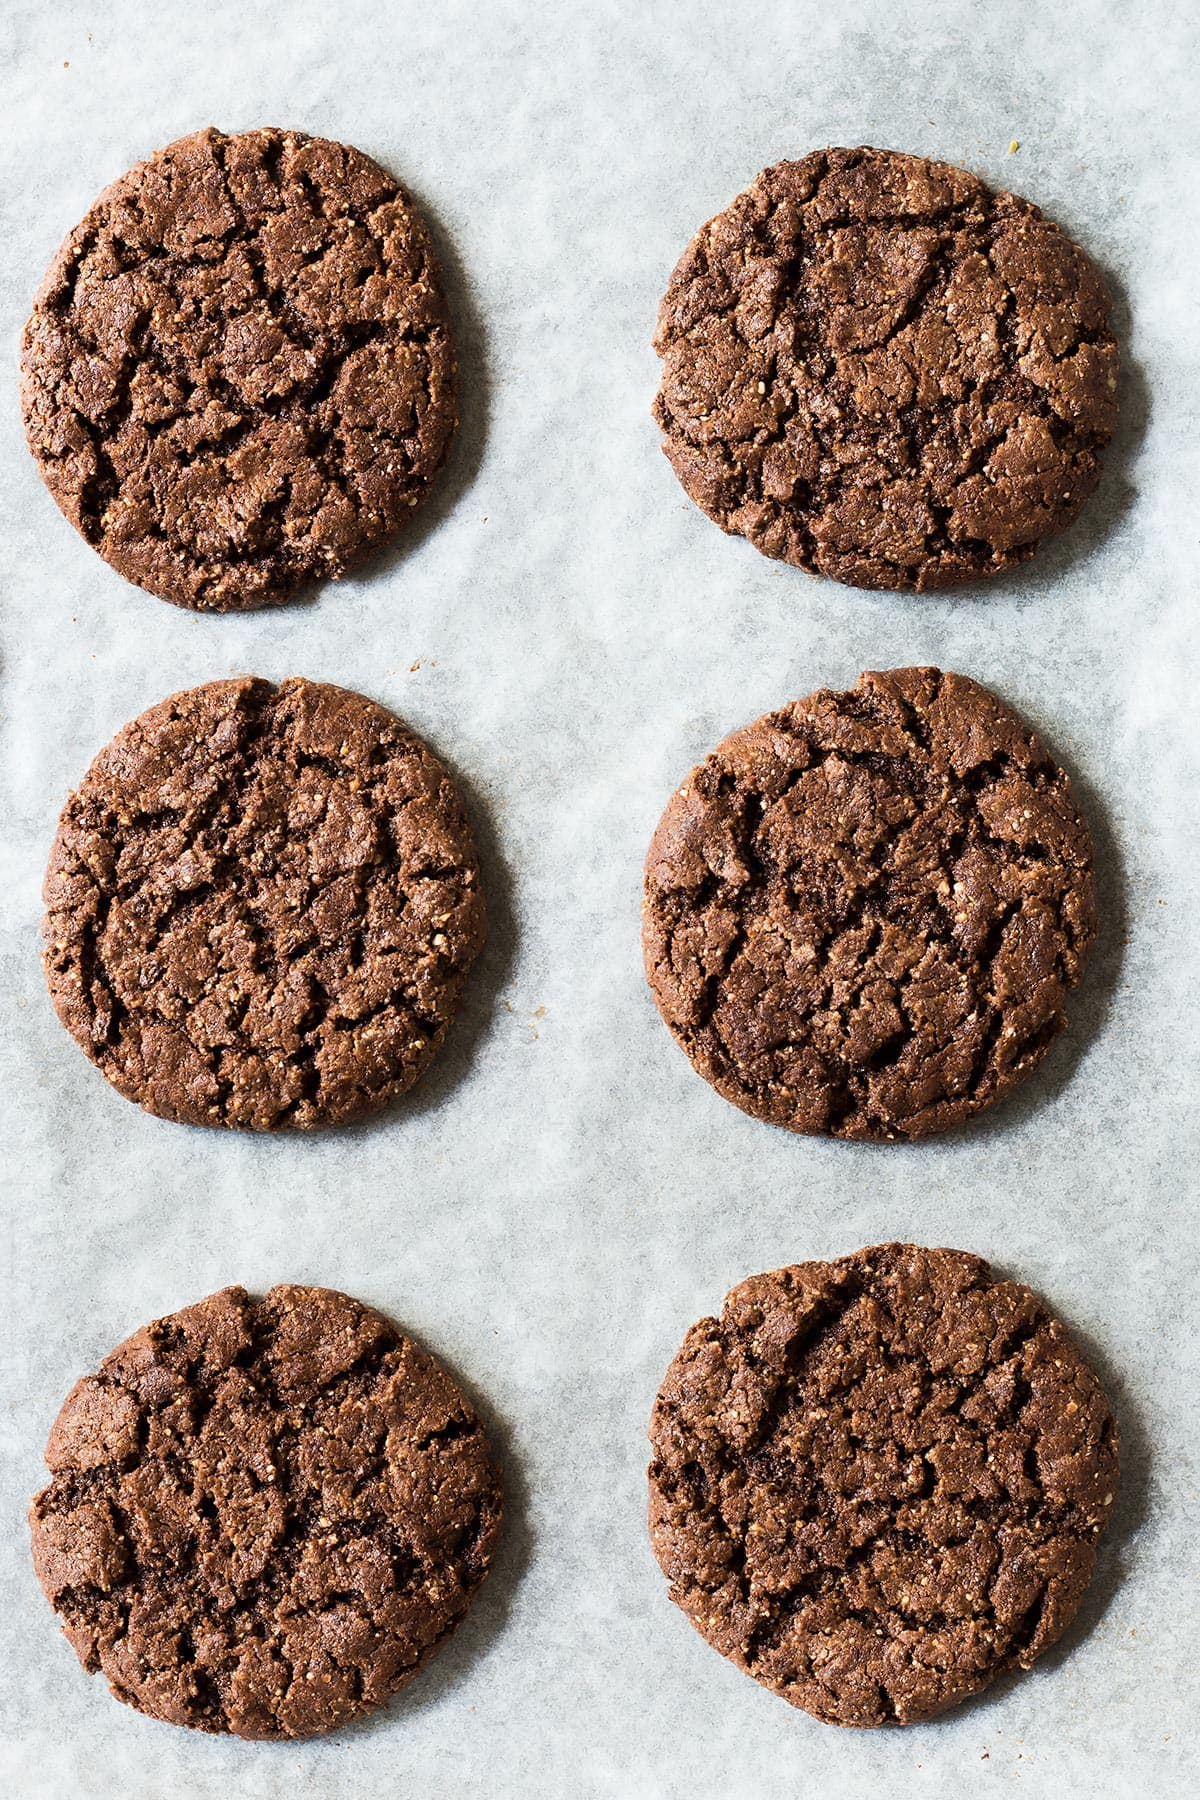 Baked No Flour Chocolate Cookies